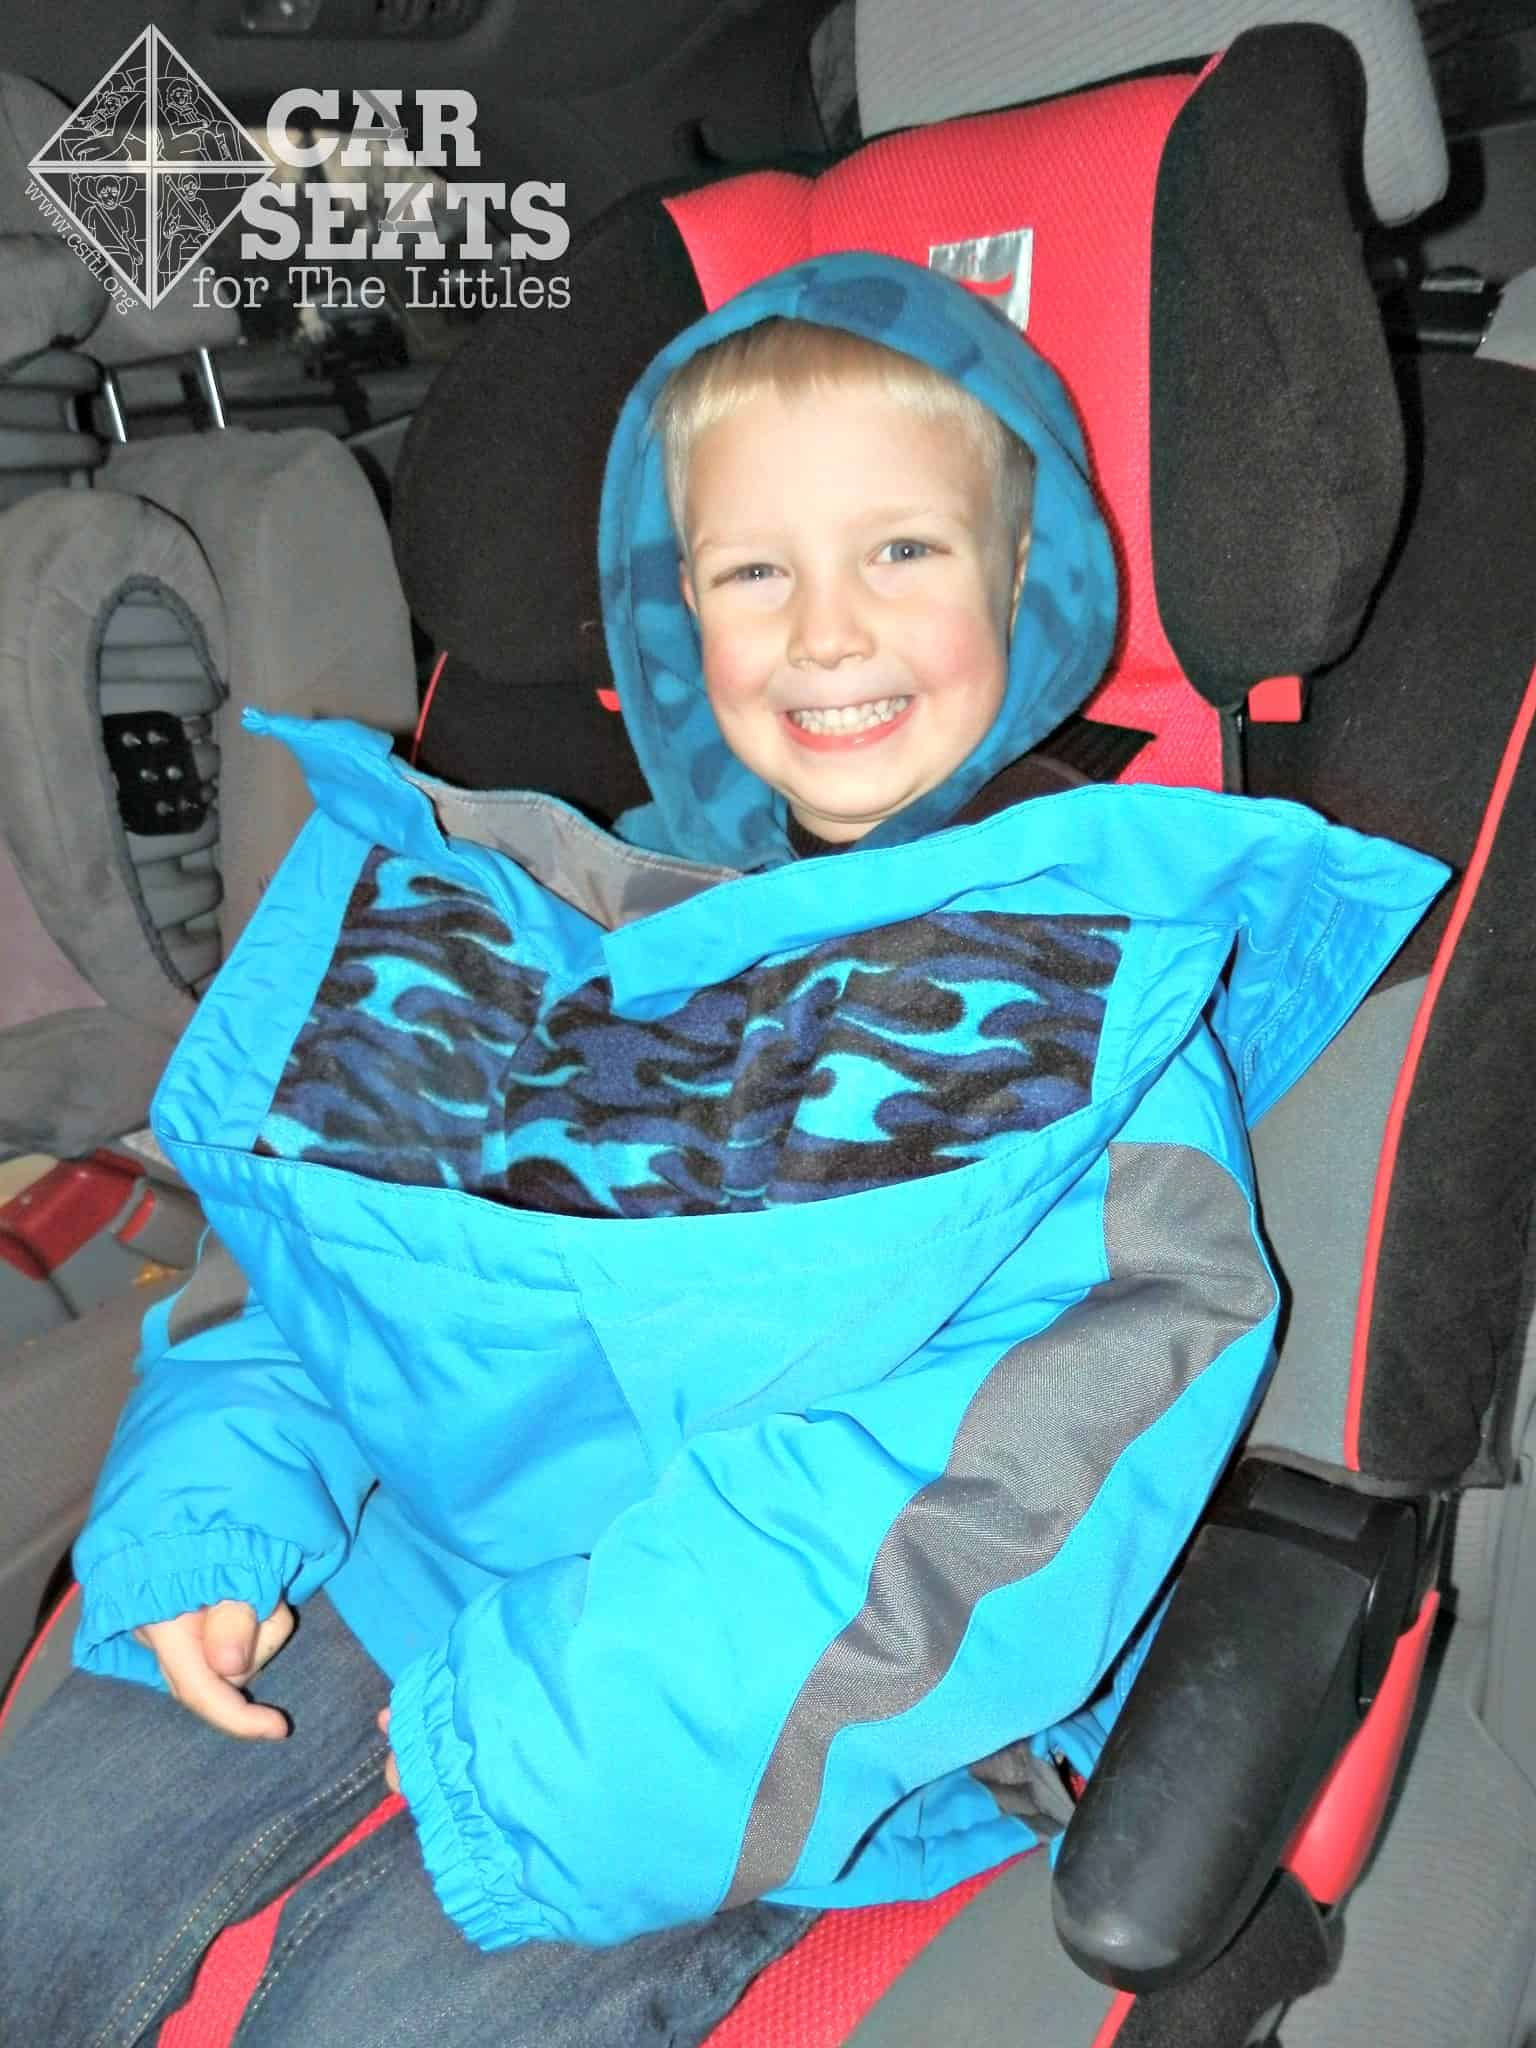 Hello Winter Good-bye Coats! - Car Seats For The Littles